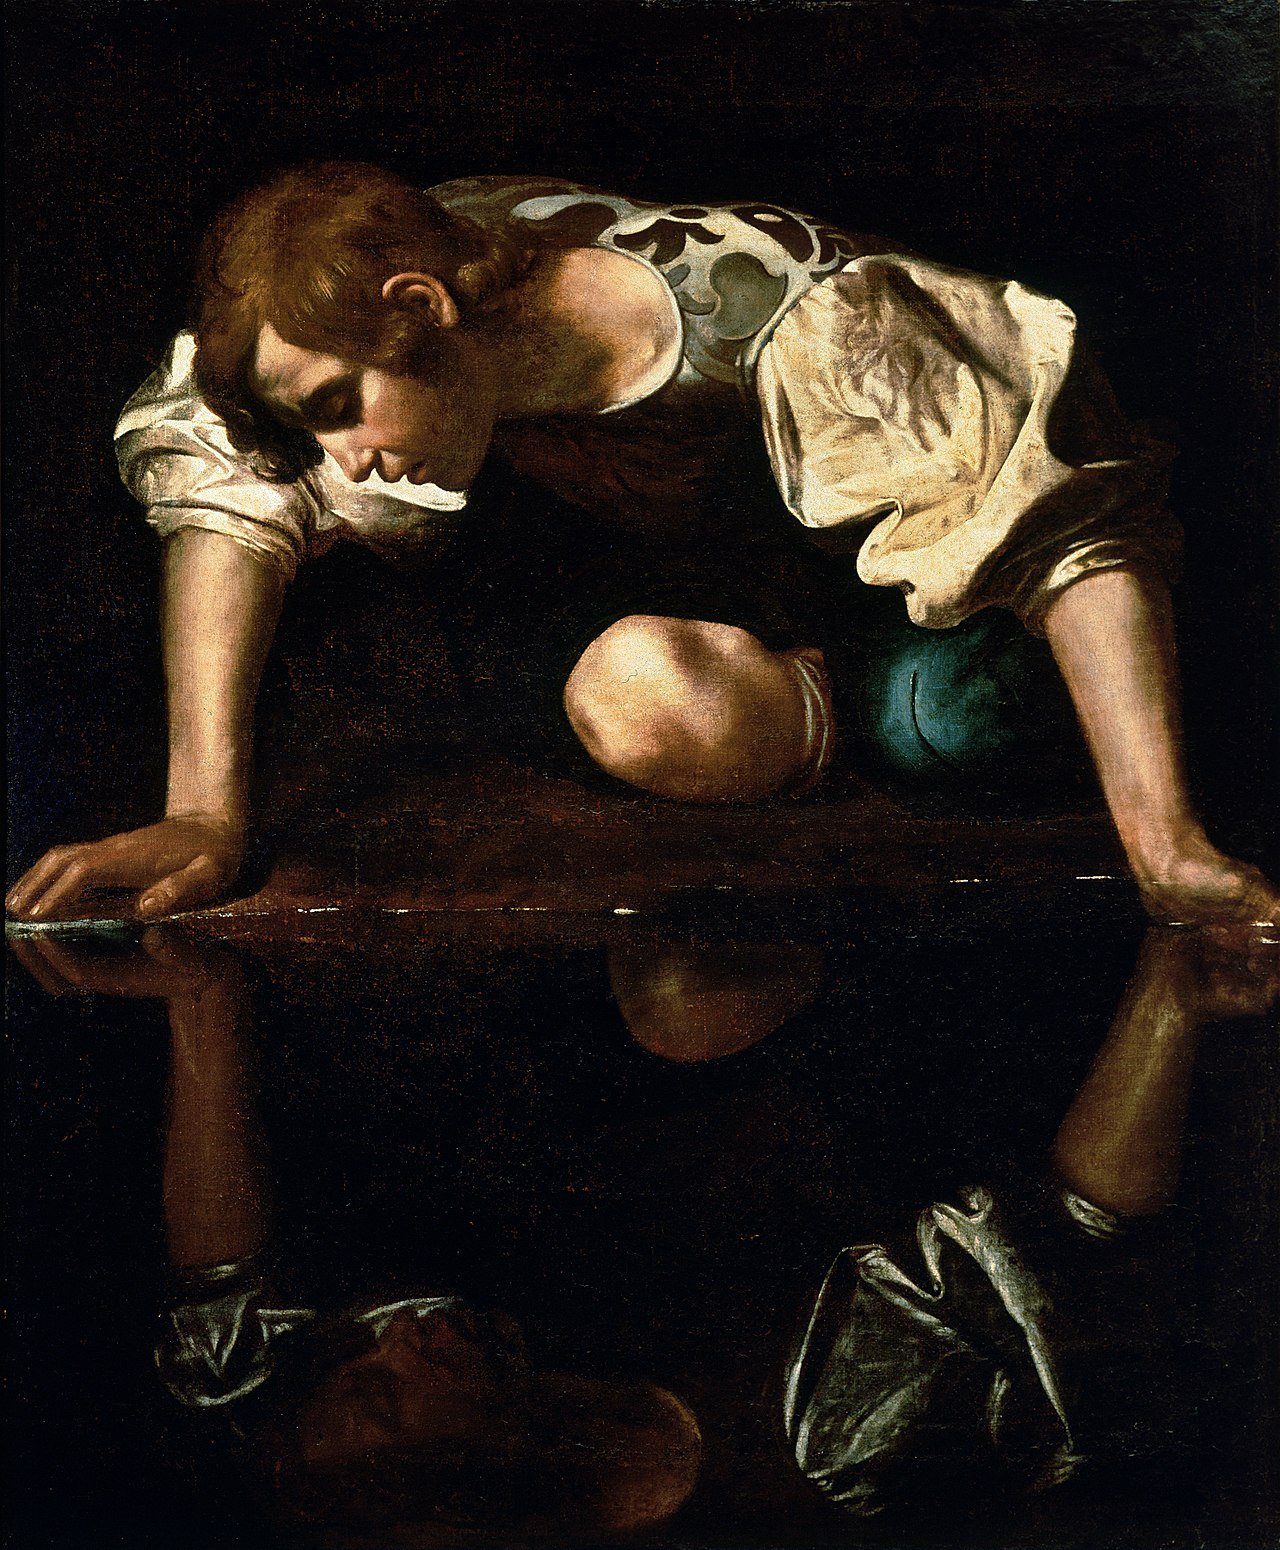 By Caravaggio - Self-scanned, Public Domain, https://commons.wikimedia.org/w/index.php?curid=25450745